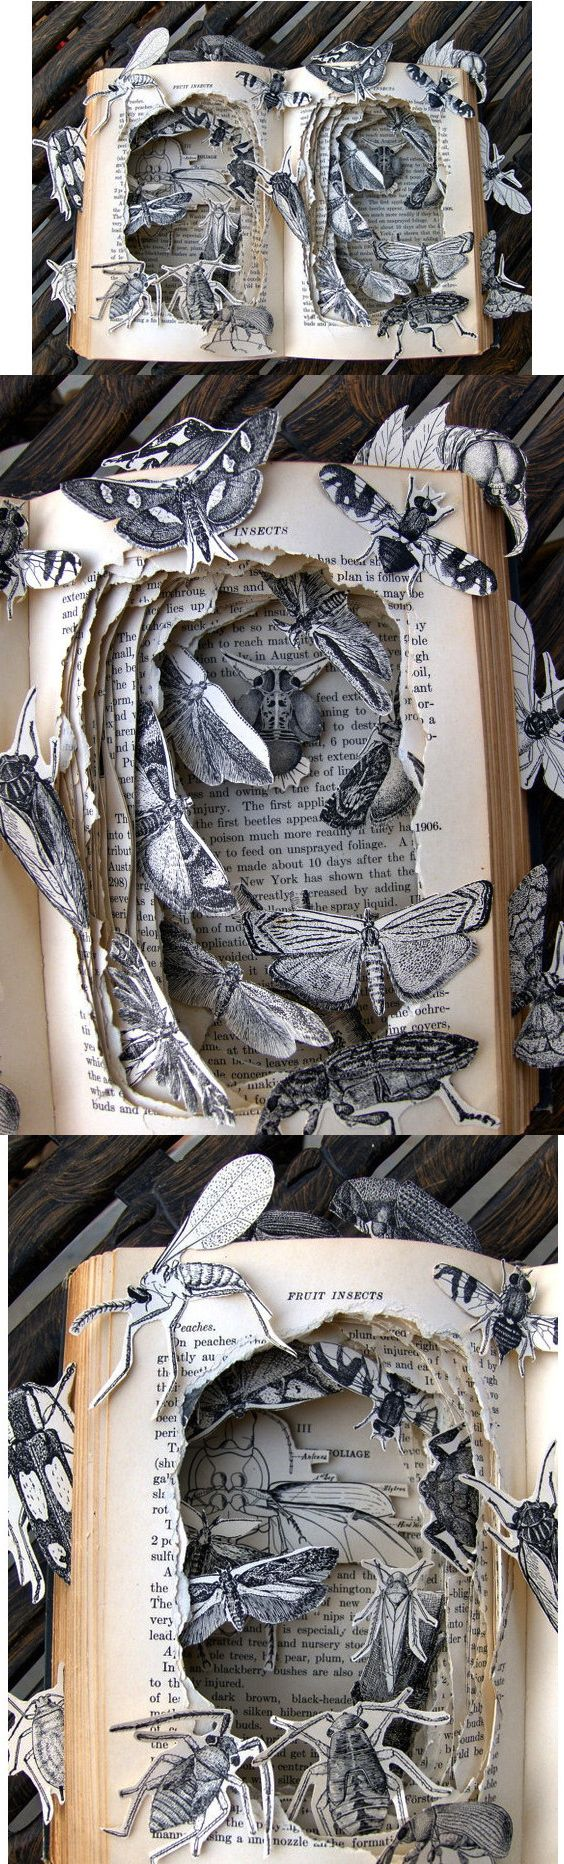 LEPA! Bugs and Meat? Kelly Campbell, Mayberry's Insects, art, sculpture, paper…